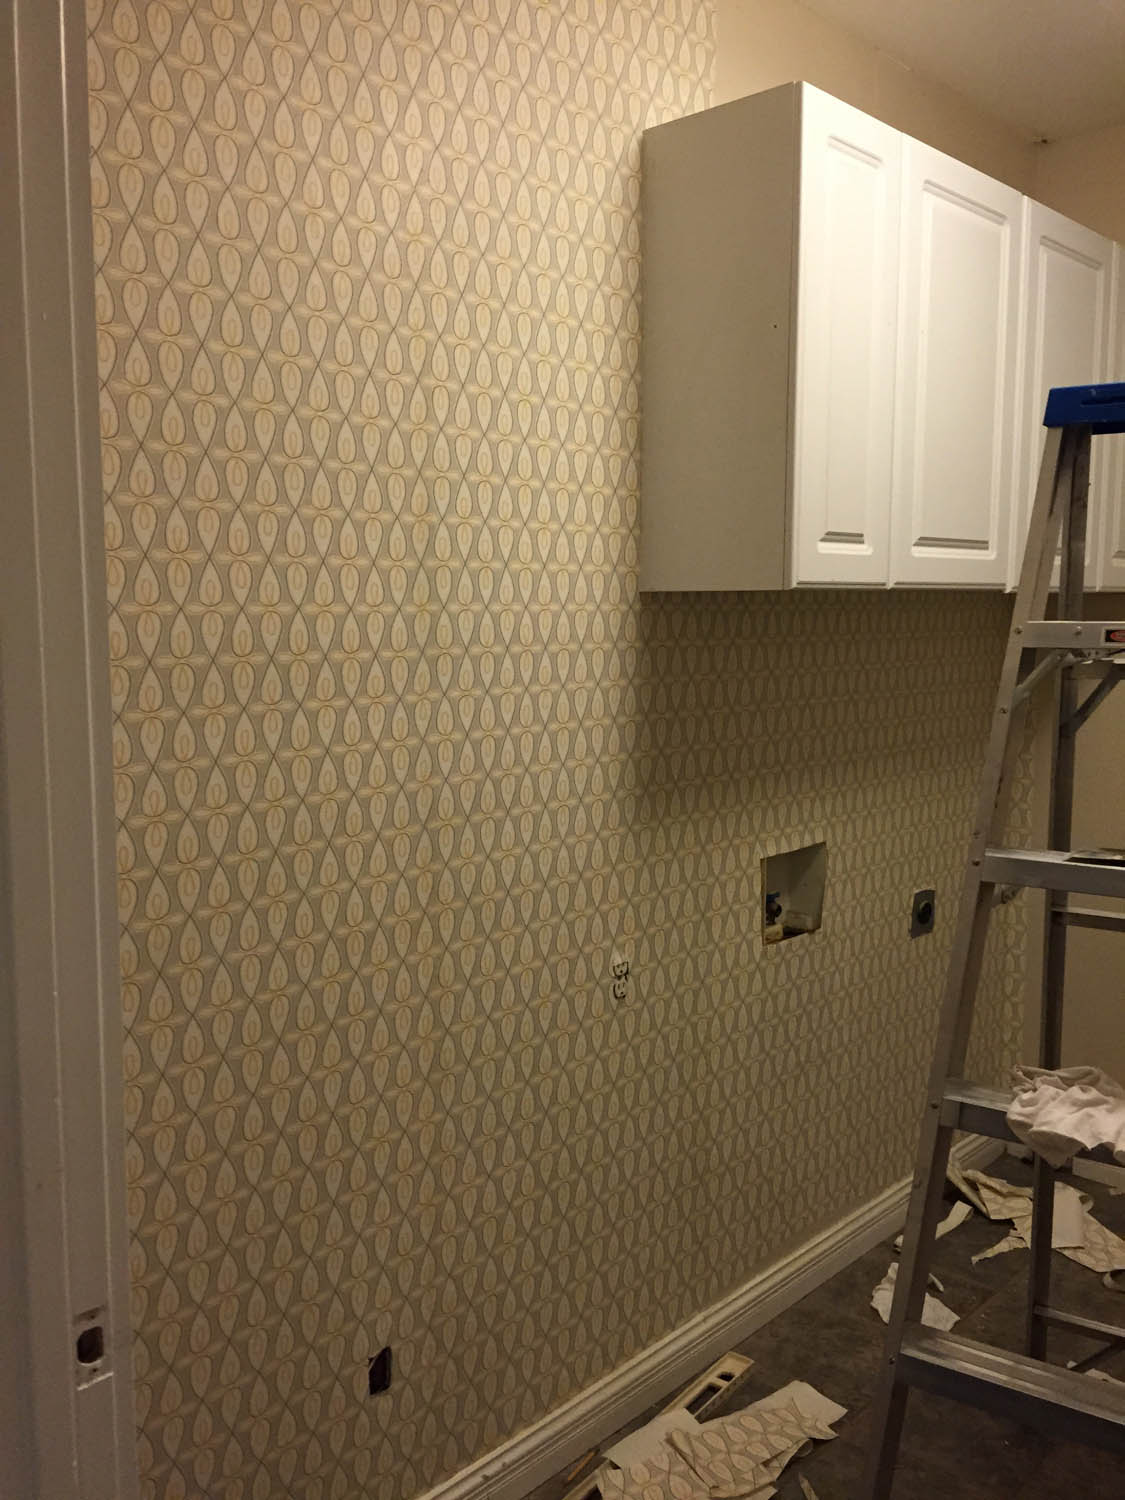 Wallpapering the laundry room piece by piece